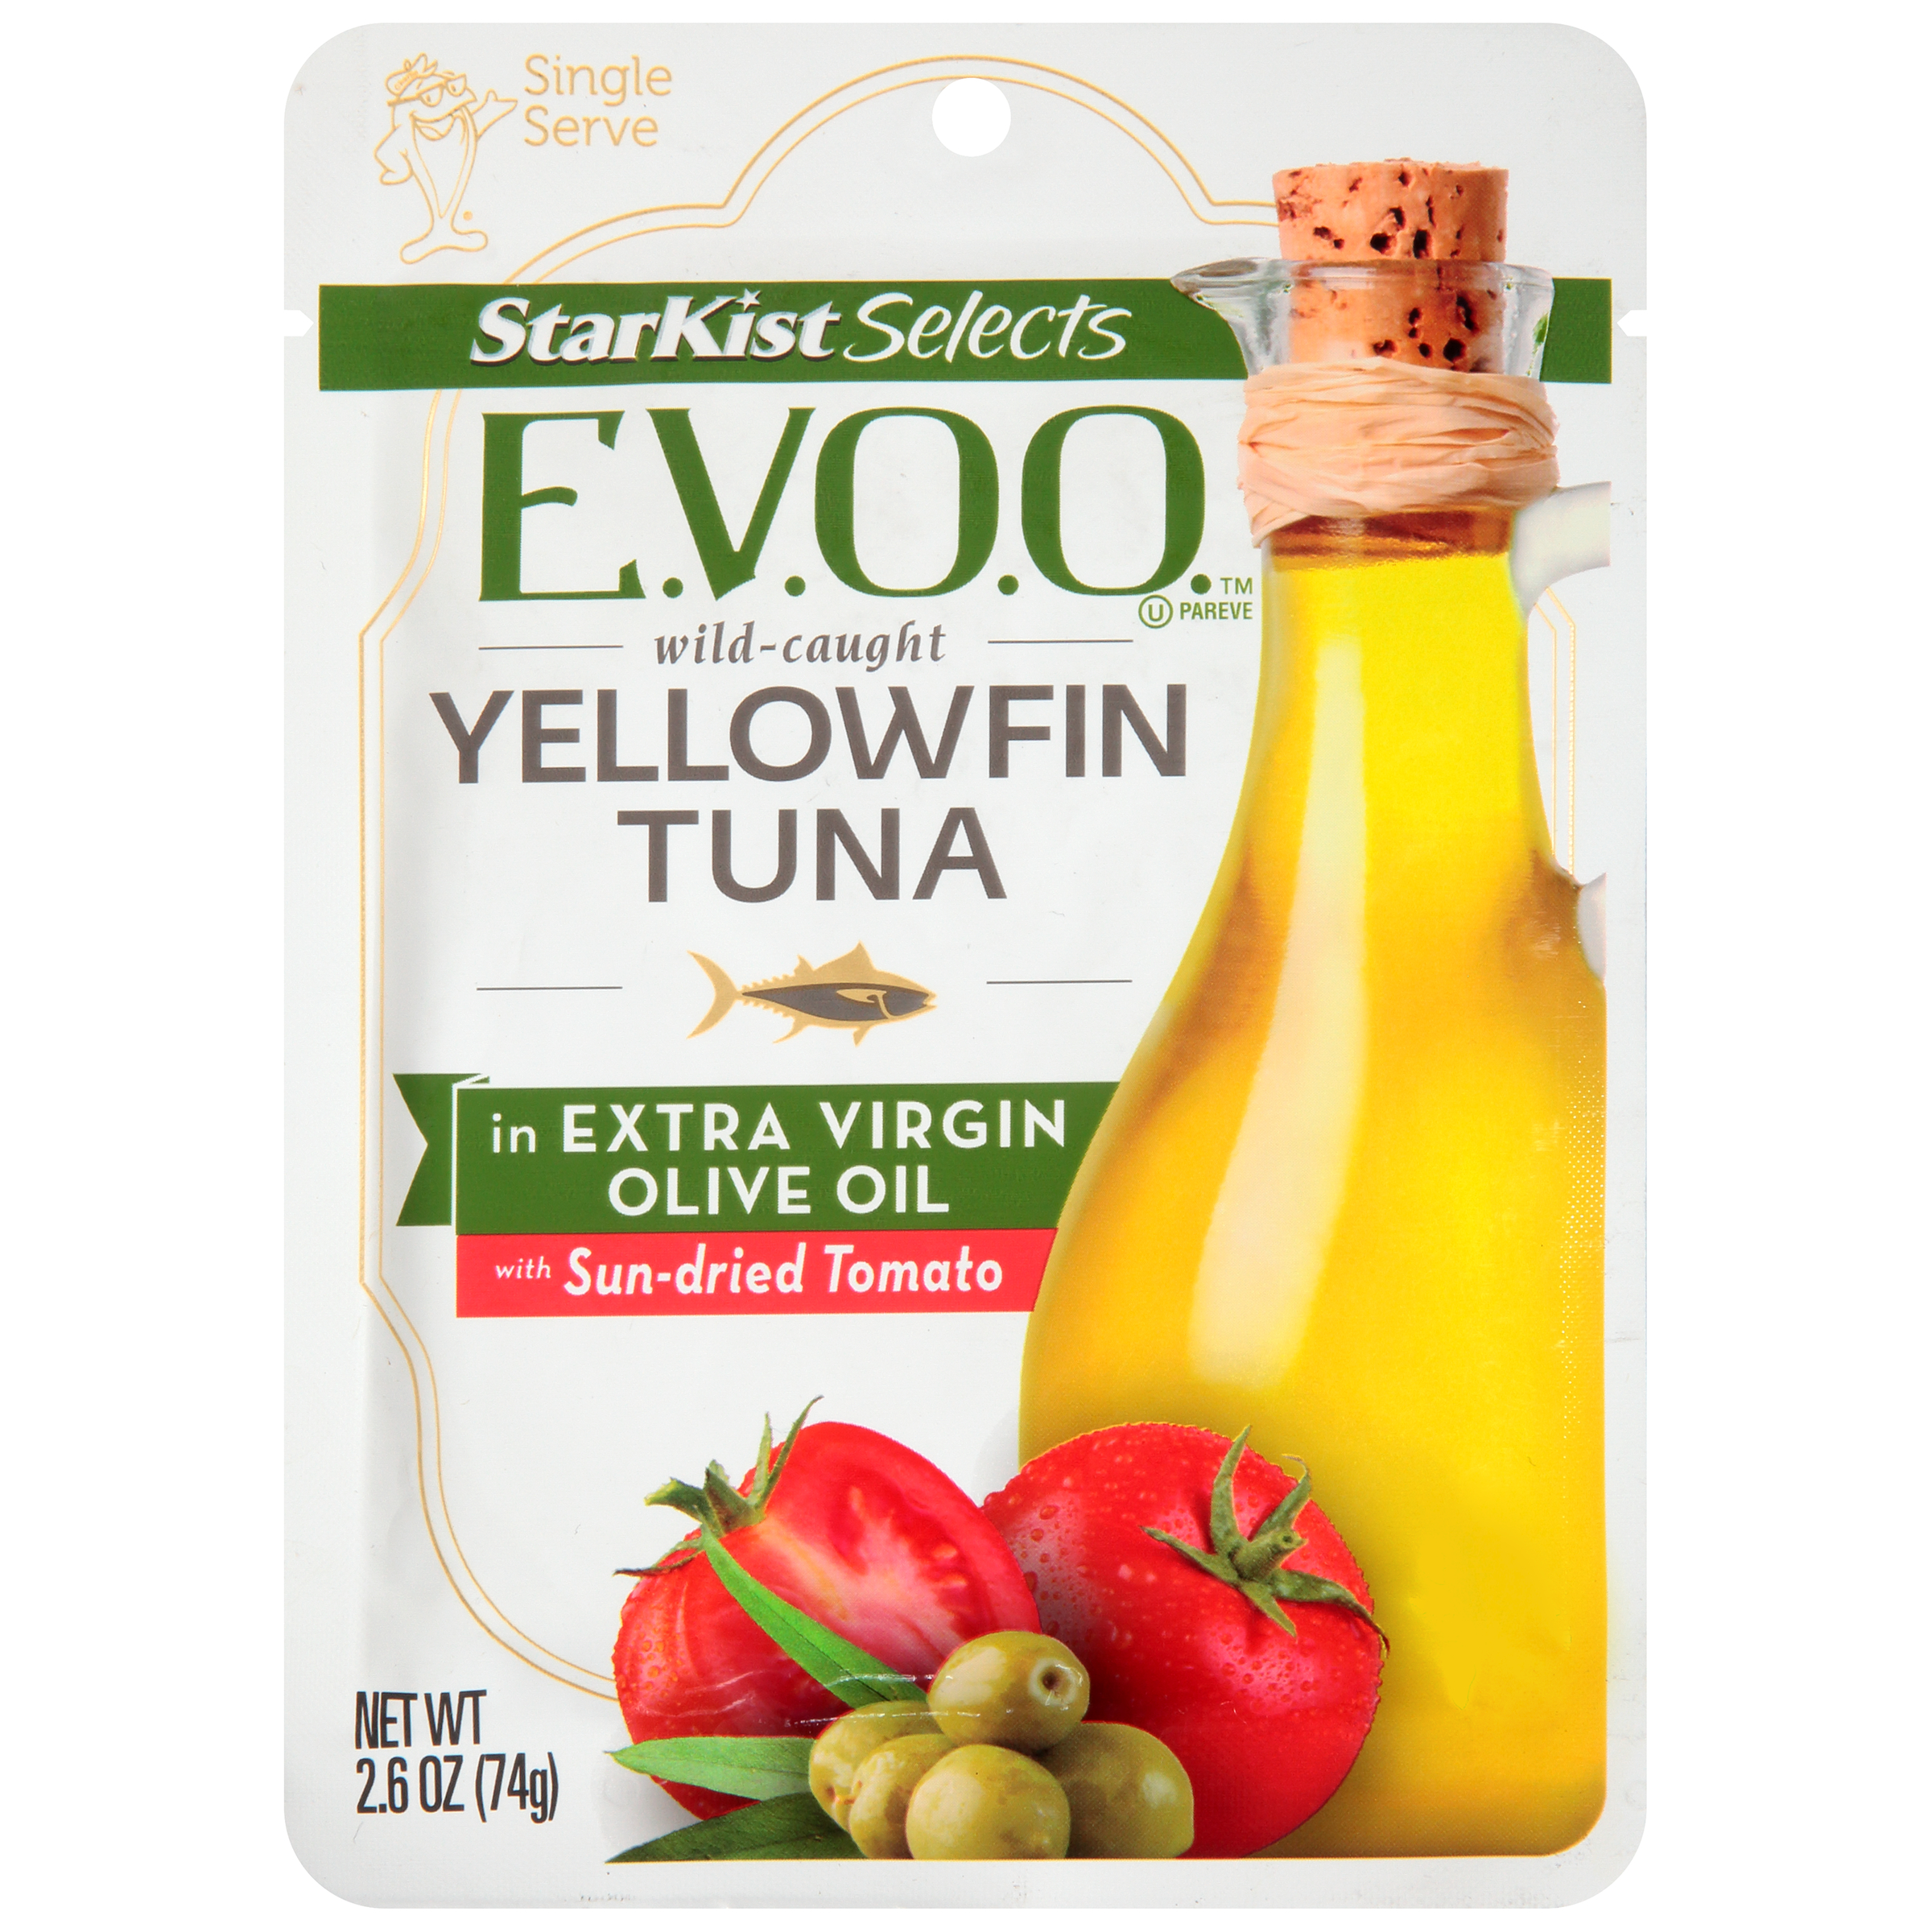 StarKist Selects Yellowfin Tuna in Extra Virgin Olive Oil with Sun-Dried Tomato, 2.6 oz Pouch